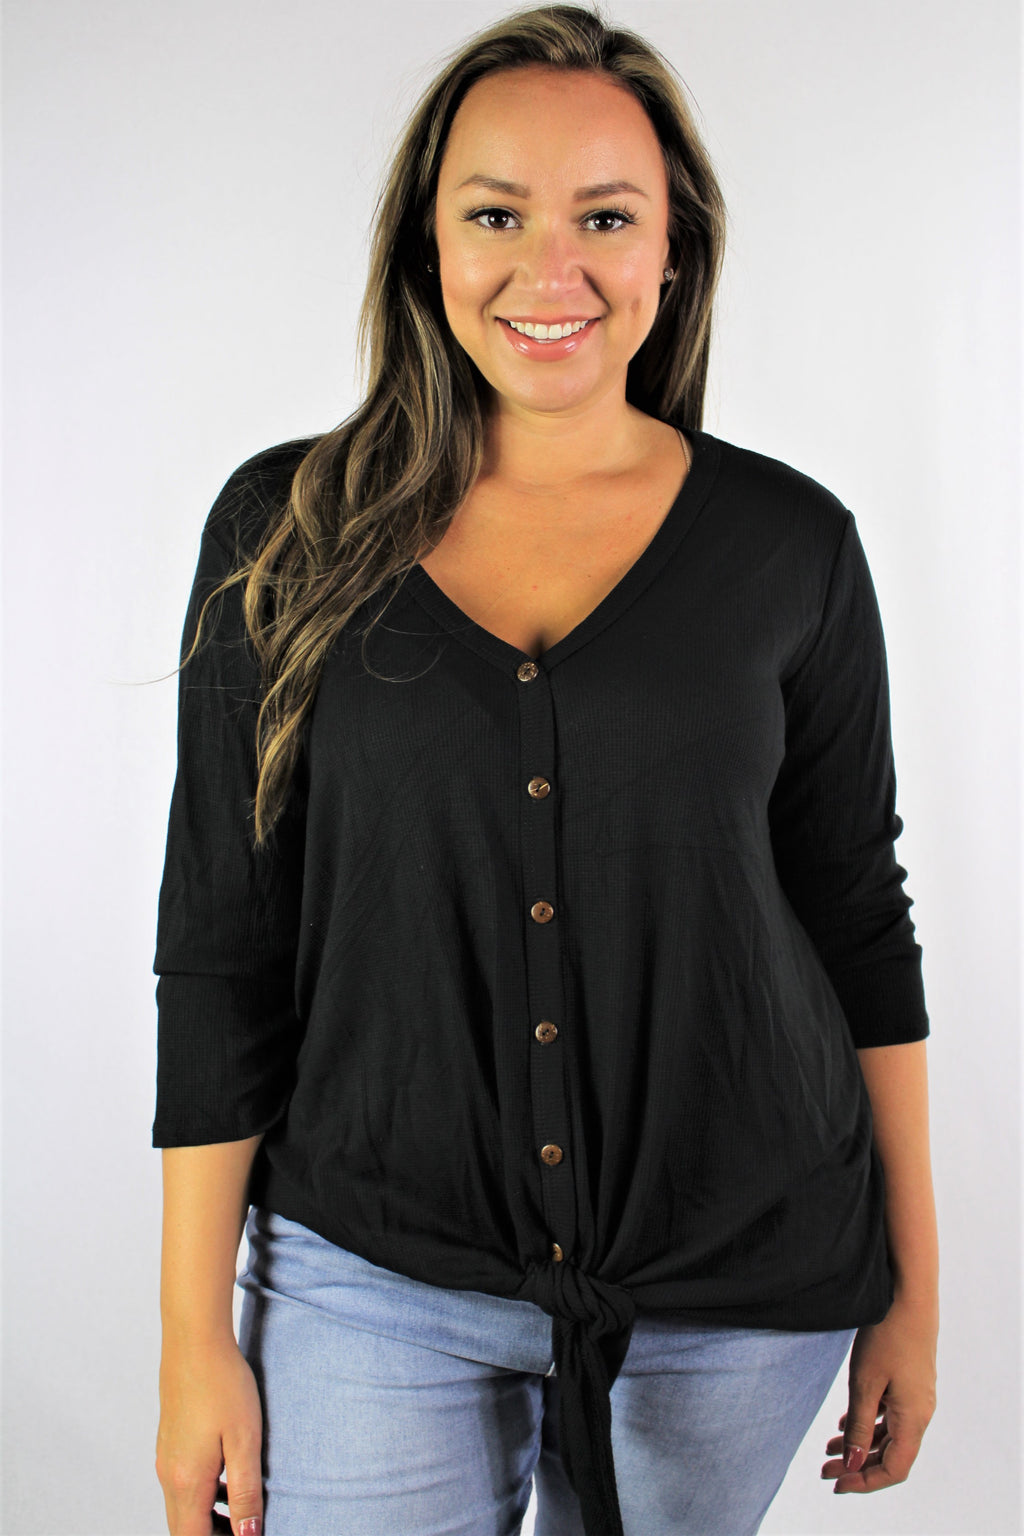 Women's Plus Size 3/4th Sleeve Solid Top with Knot